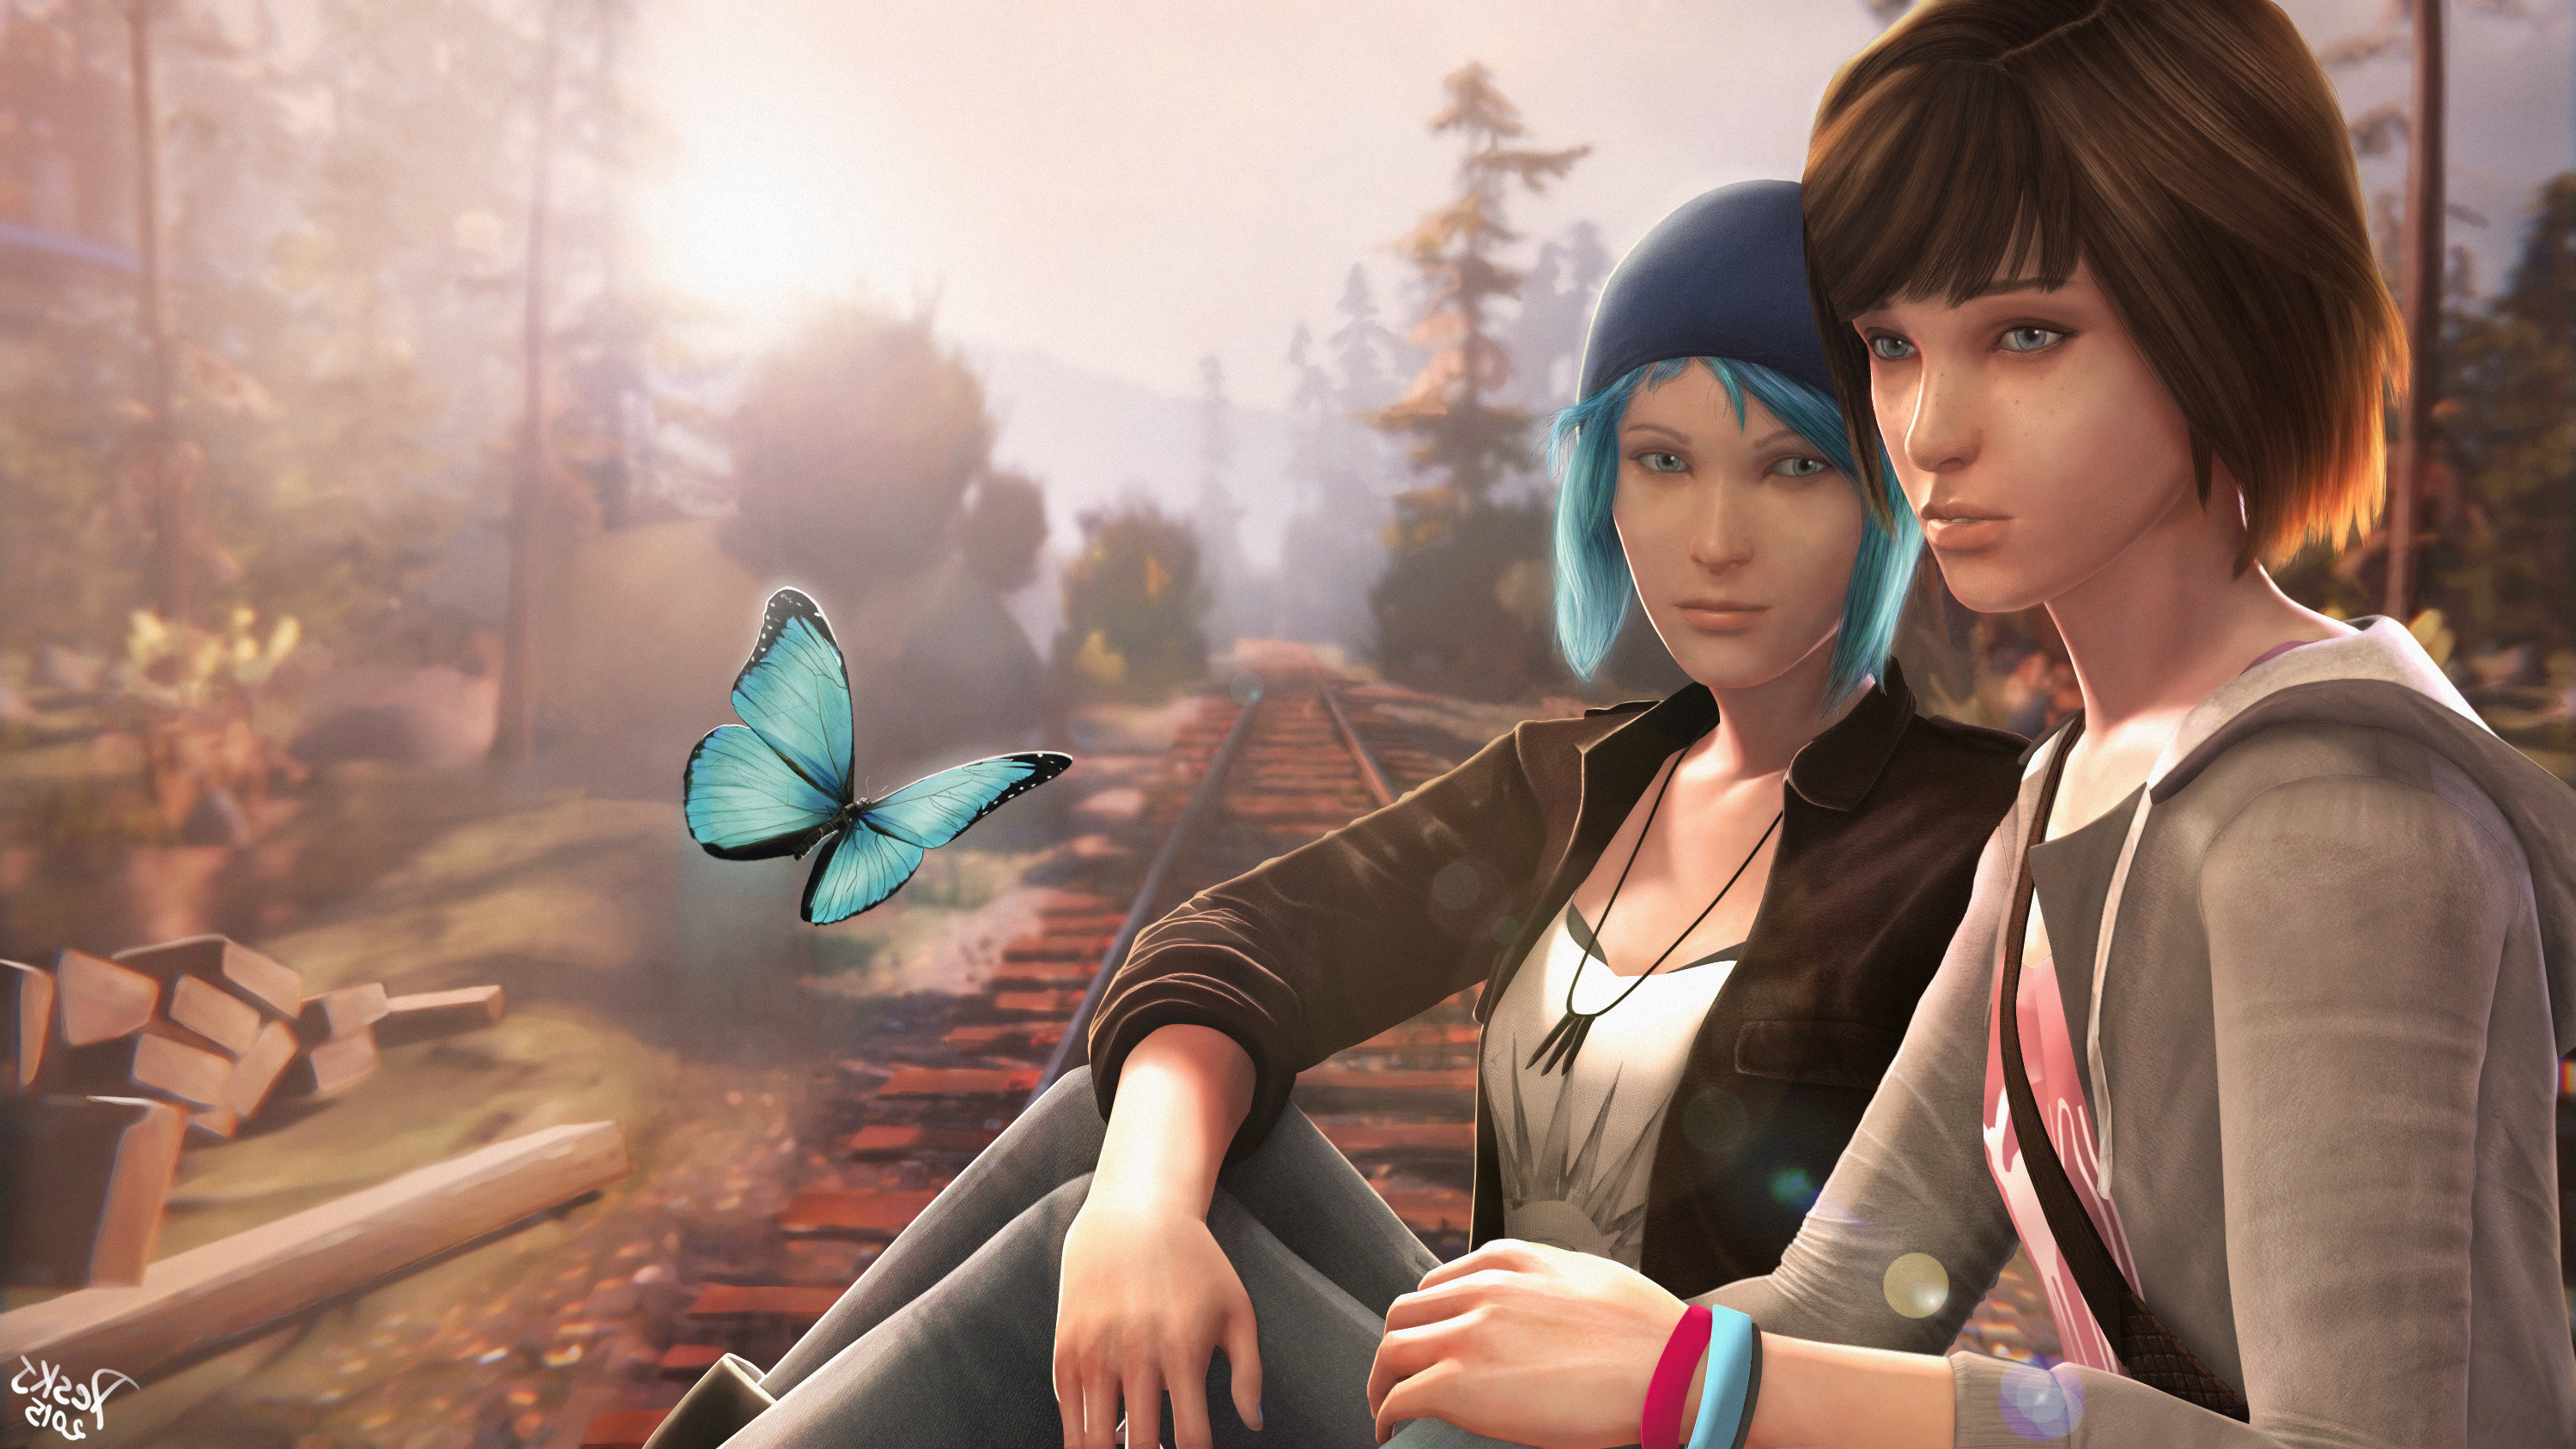 Res: 3000x1688, Max Caulfield, Chloe Price, Life Is Strange, Video Games Wallpapers HD /  Desktop and Mobile Backgrounds